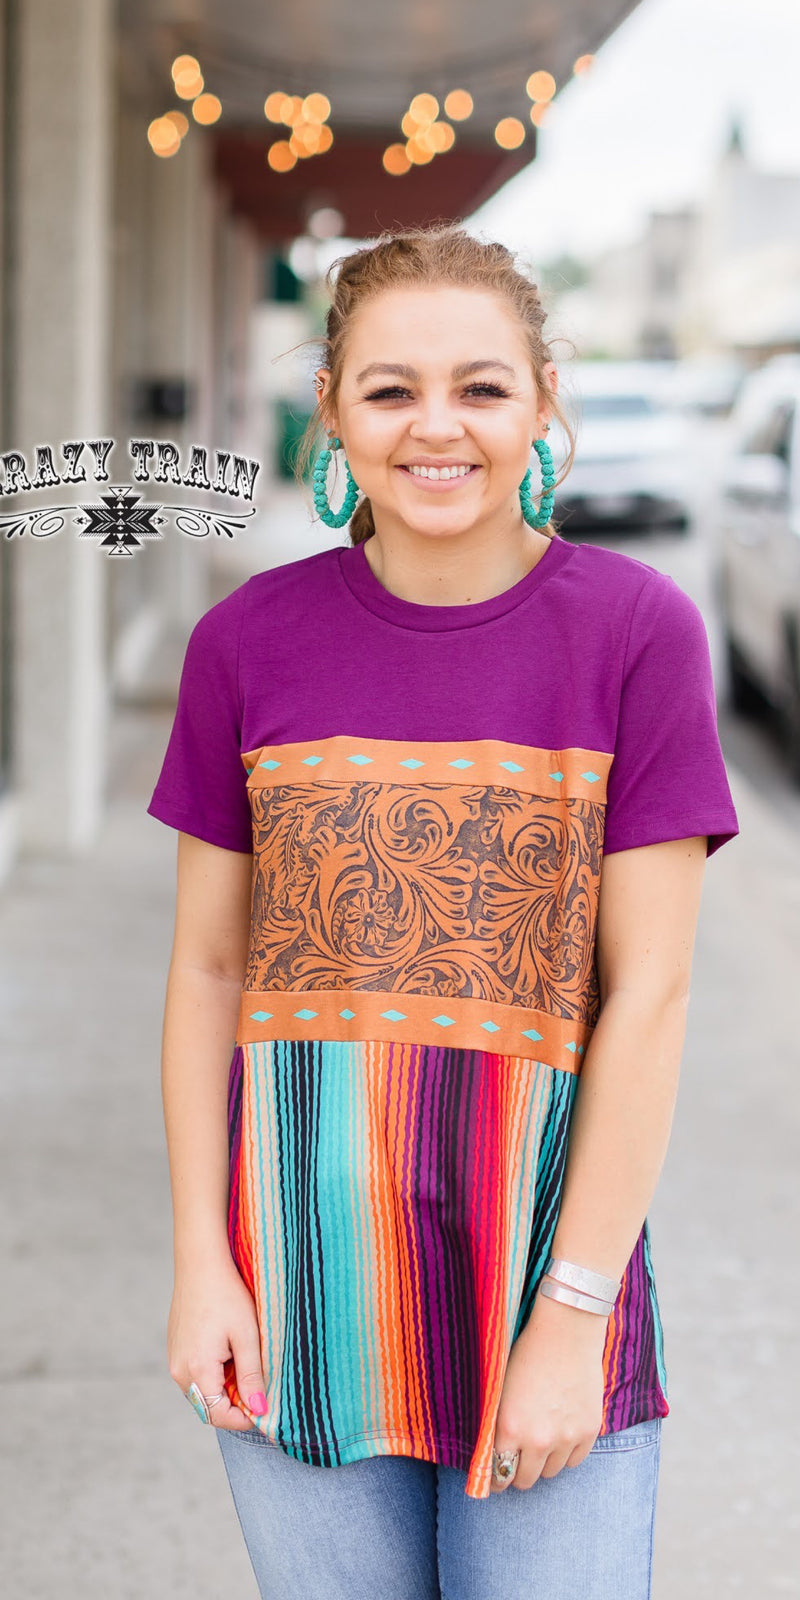 Ranch Royalty Serape Tooled Top - Also in Plus Size